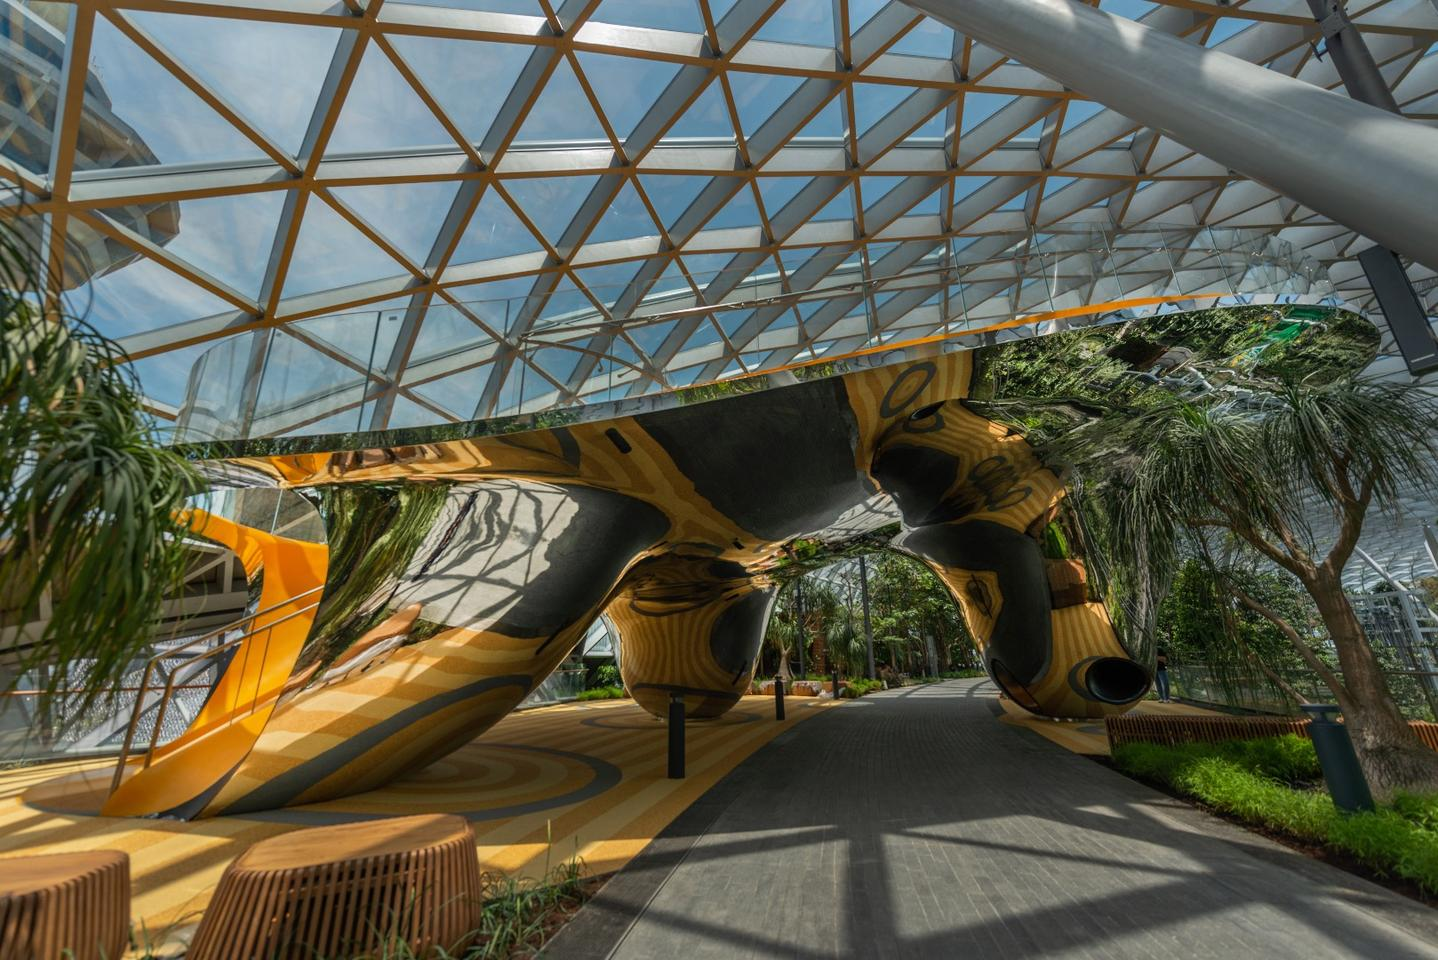 Jewel Changi Airport'sslides are locatedwithin a reflectiveart installation